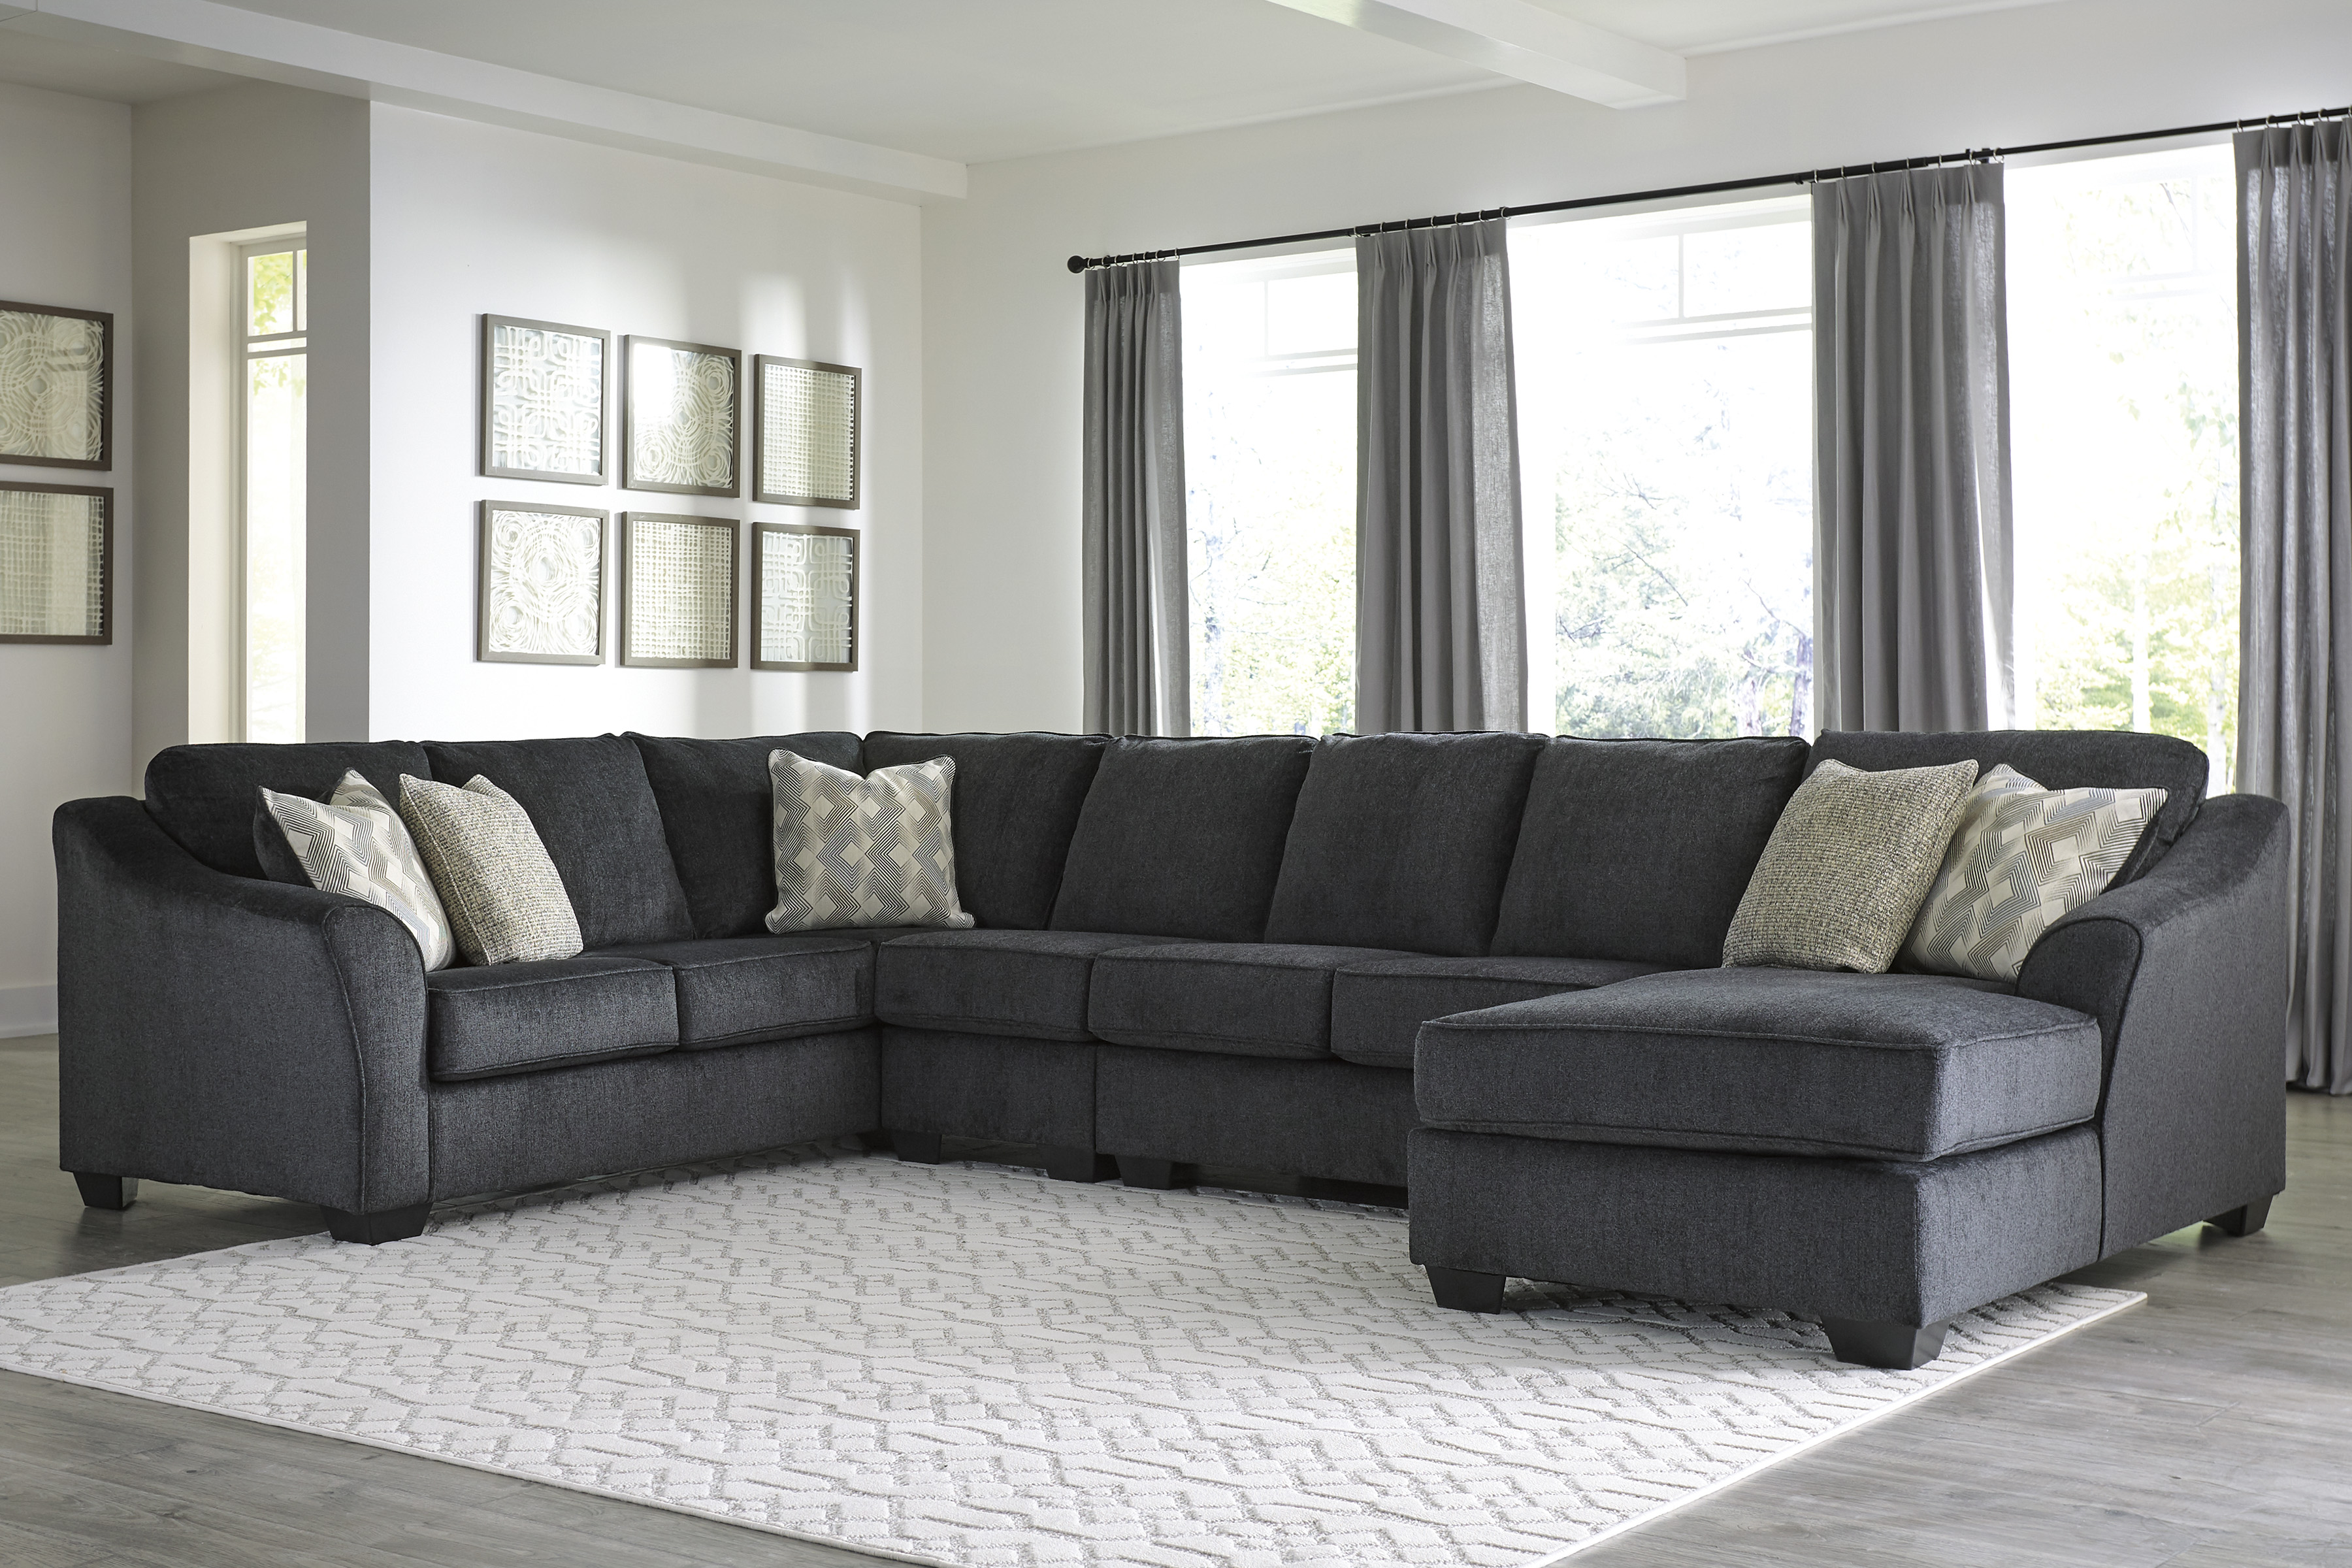 Eltmann Slate Sectional With Corner Chaise Left Or Right